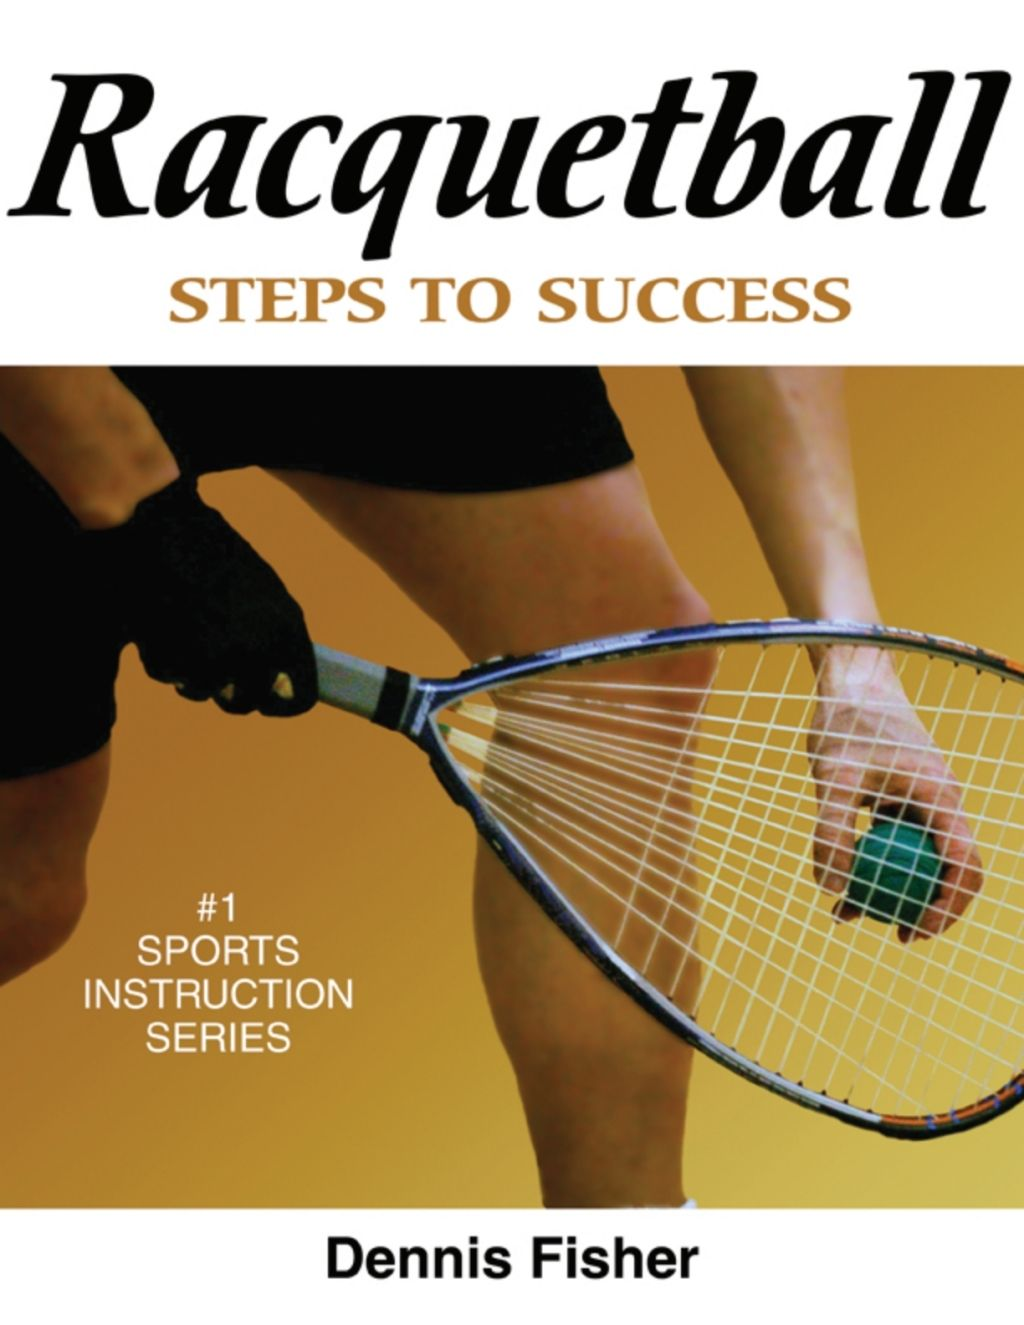 Racquetball (eBook) (With images) Racquetball, Steps to